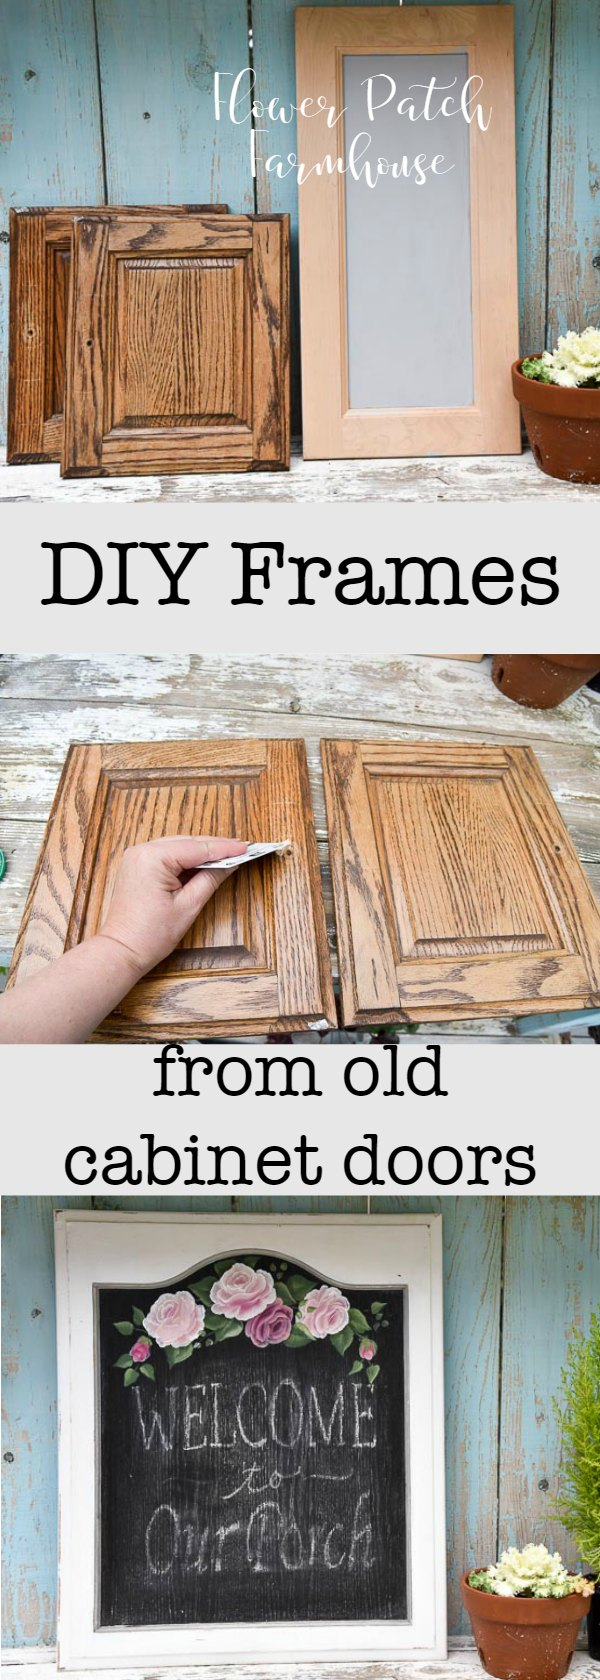 DIY frames from cabinet doors. Up-cycle used cabinet doors into fun frames for artwork, photos or chalkboards.  Fast and easy.